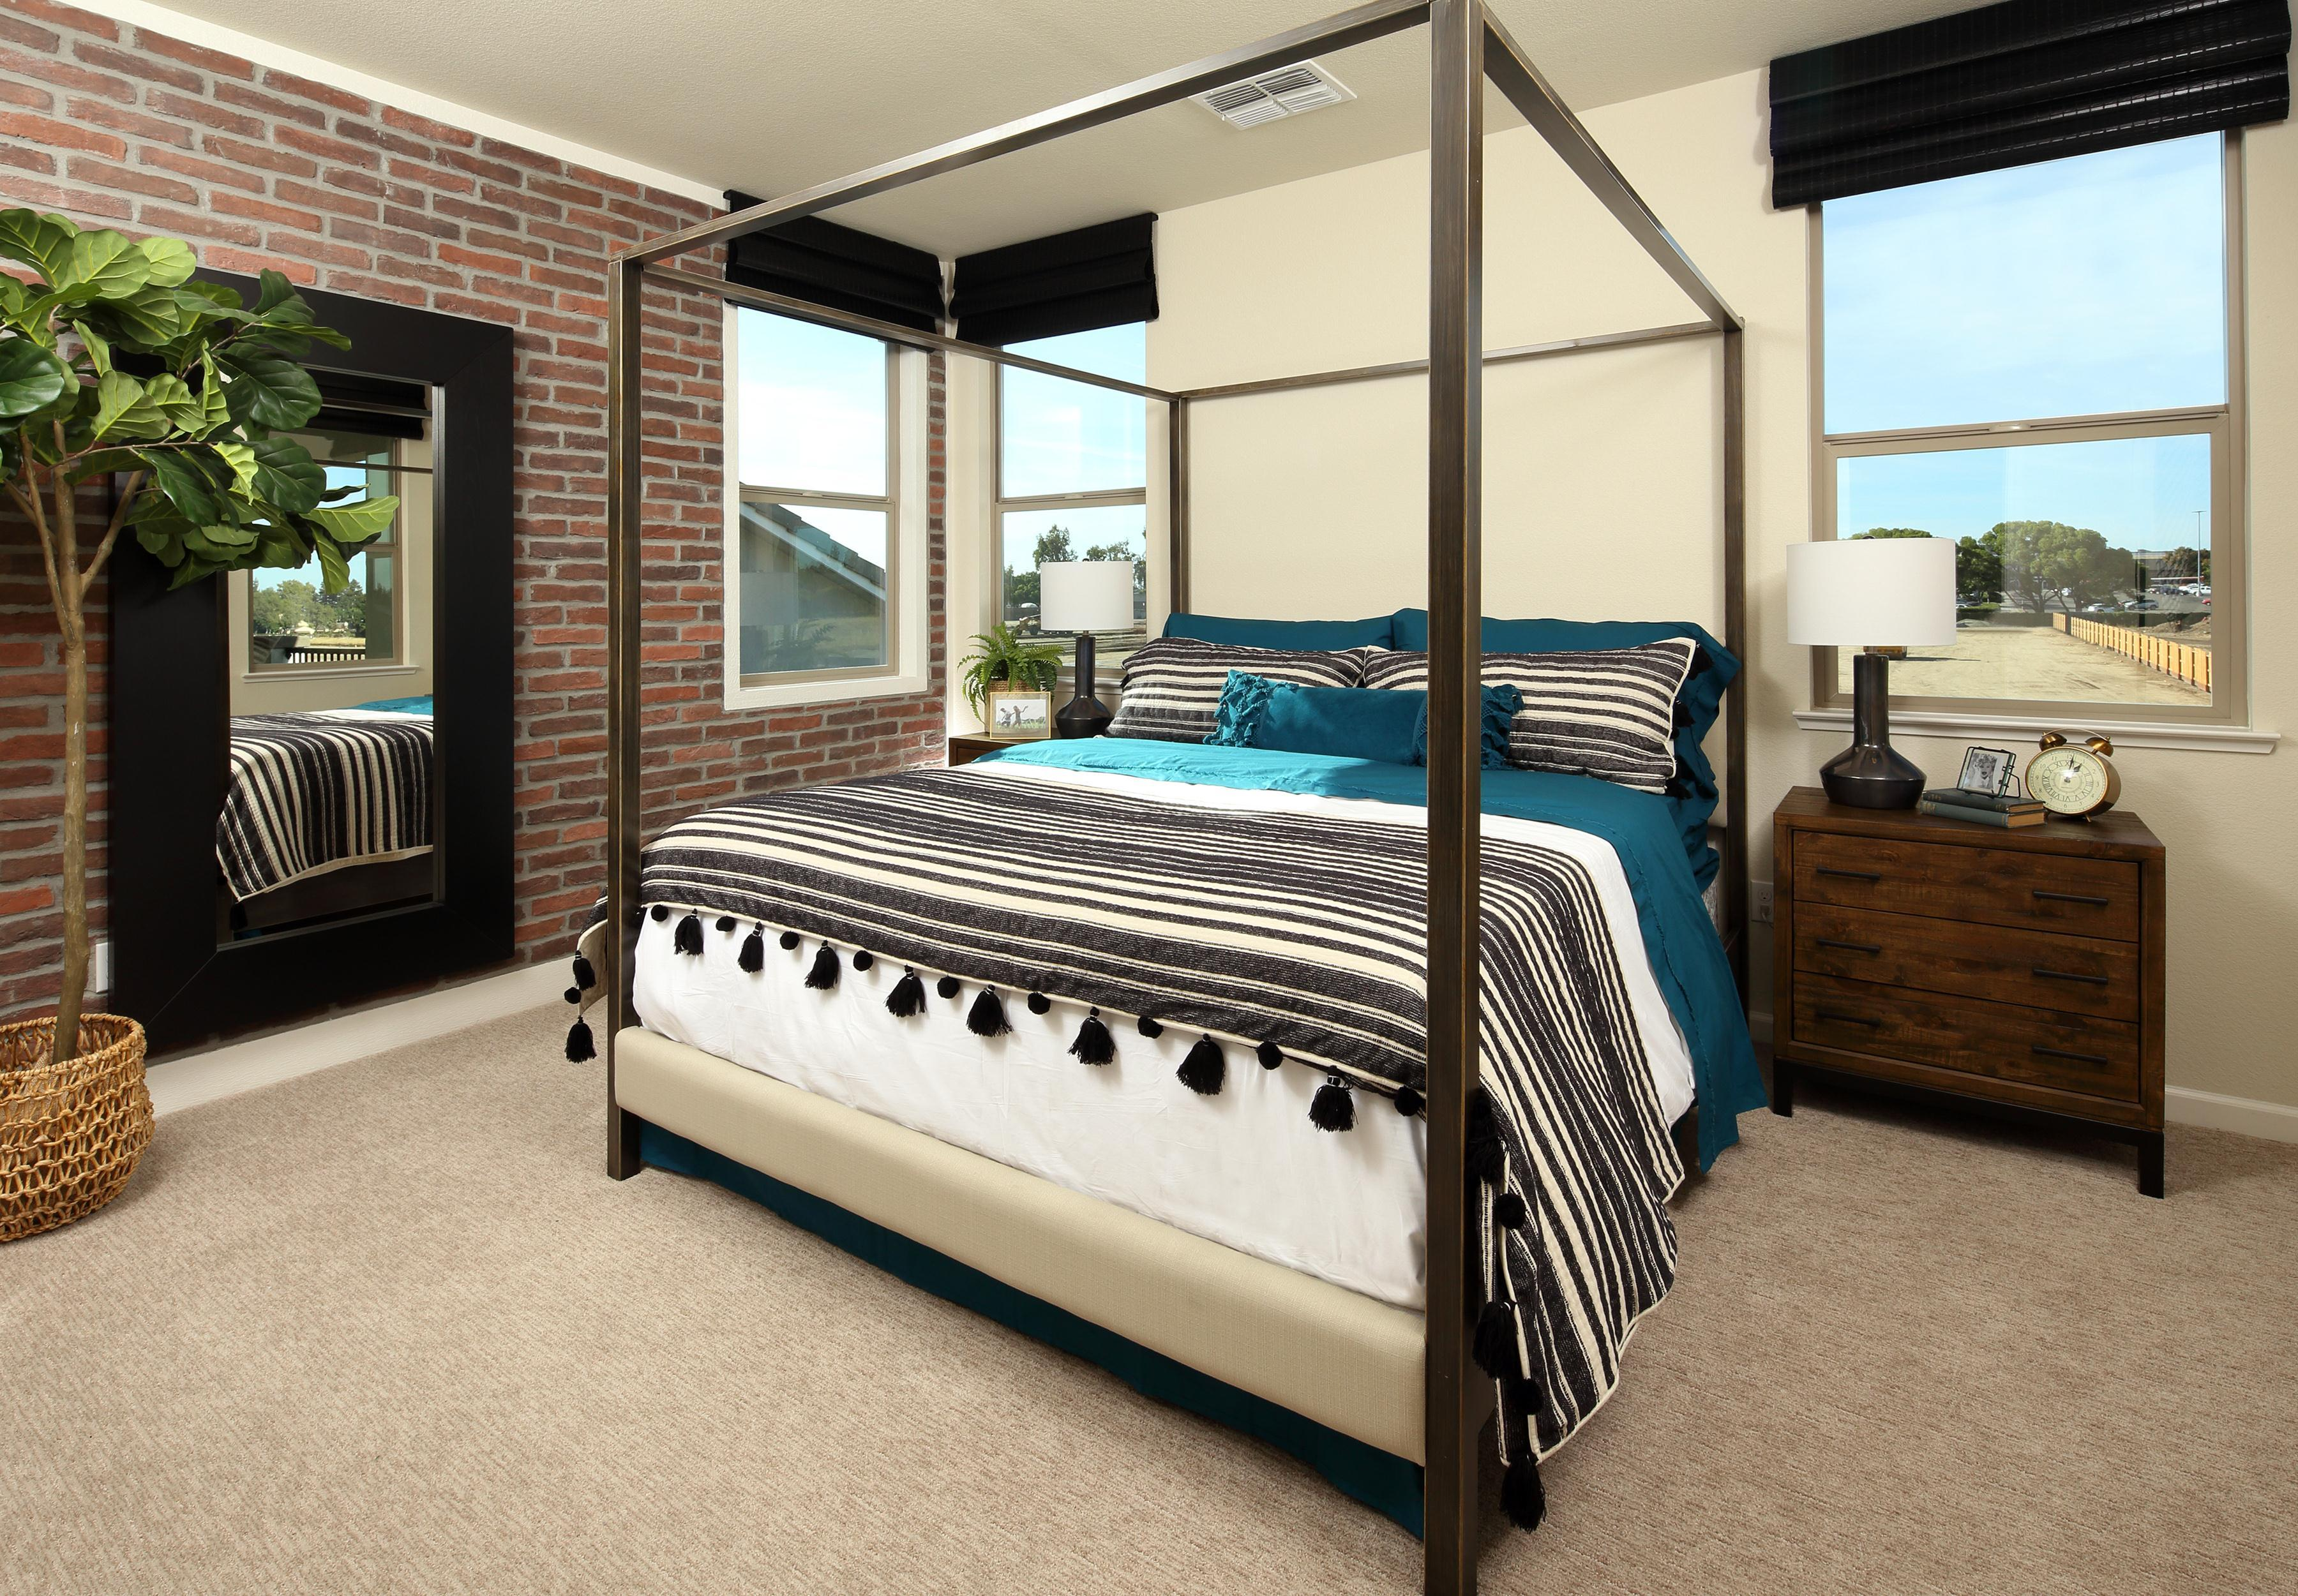 Bedroom featured in THE CHANDELIER By Florsheim Homes in Modesto, CA